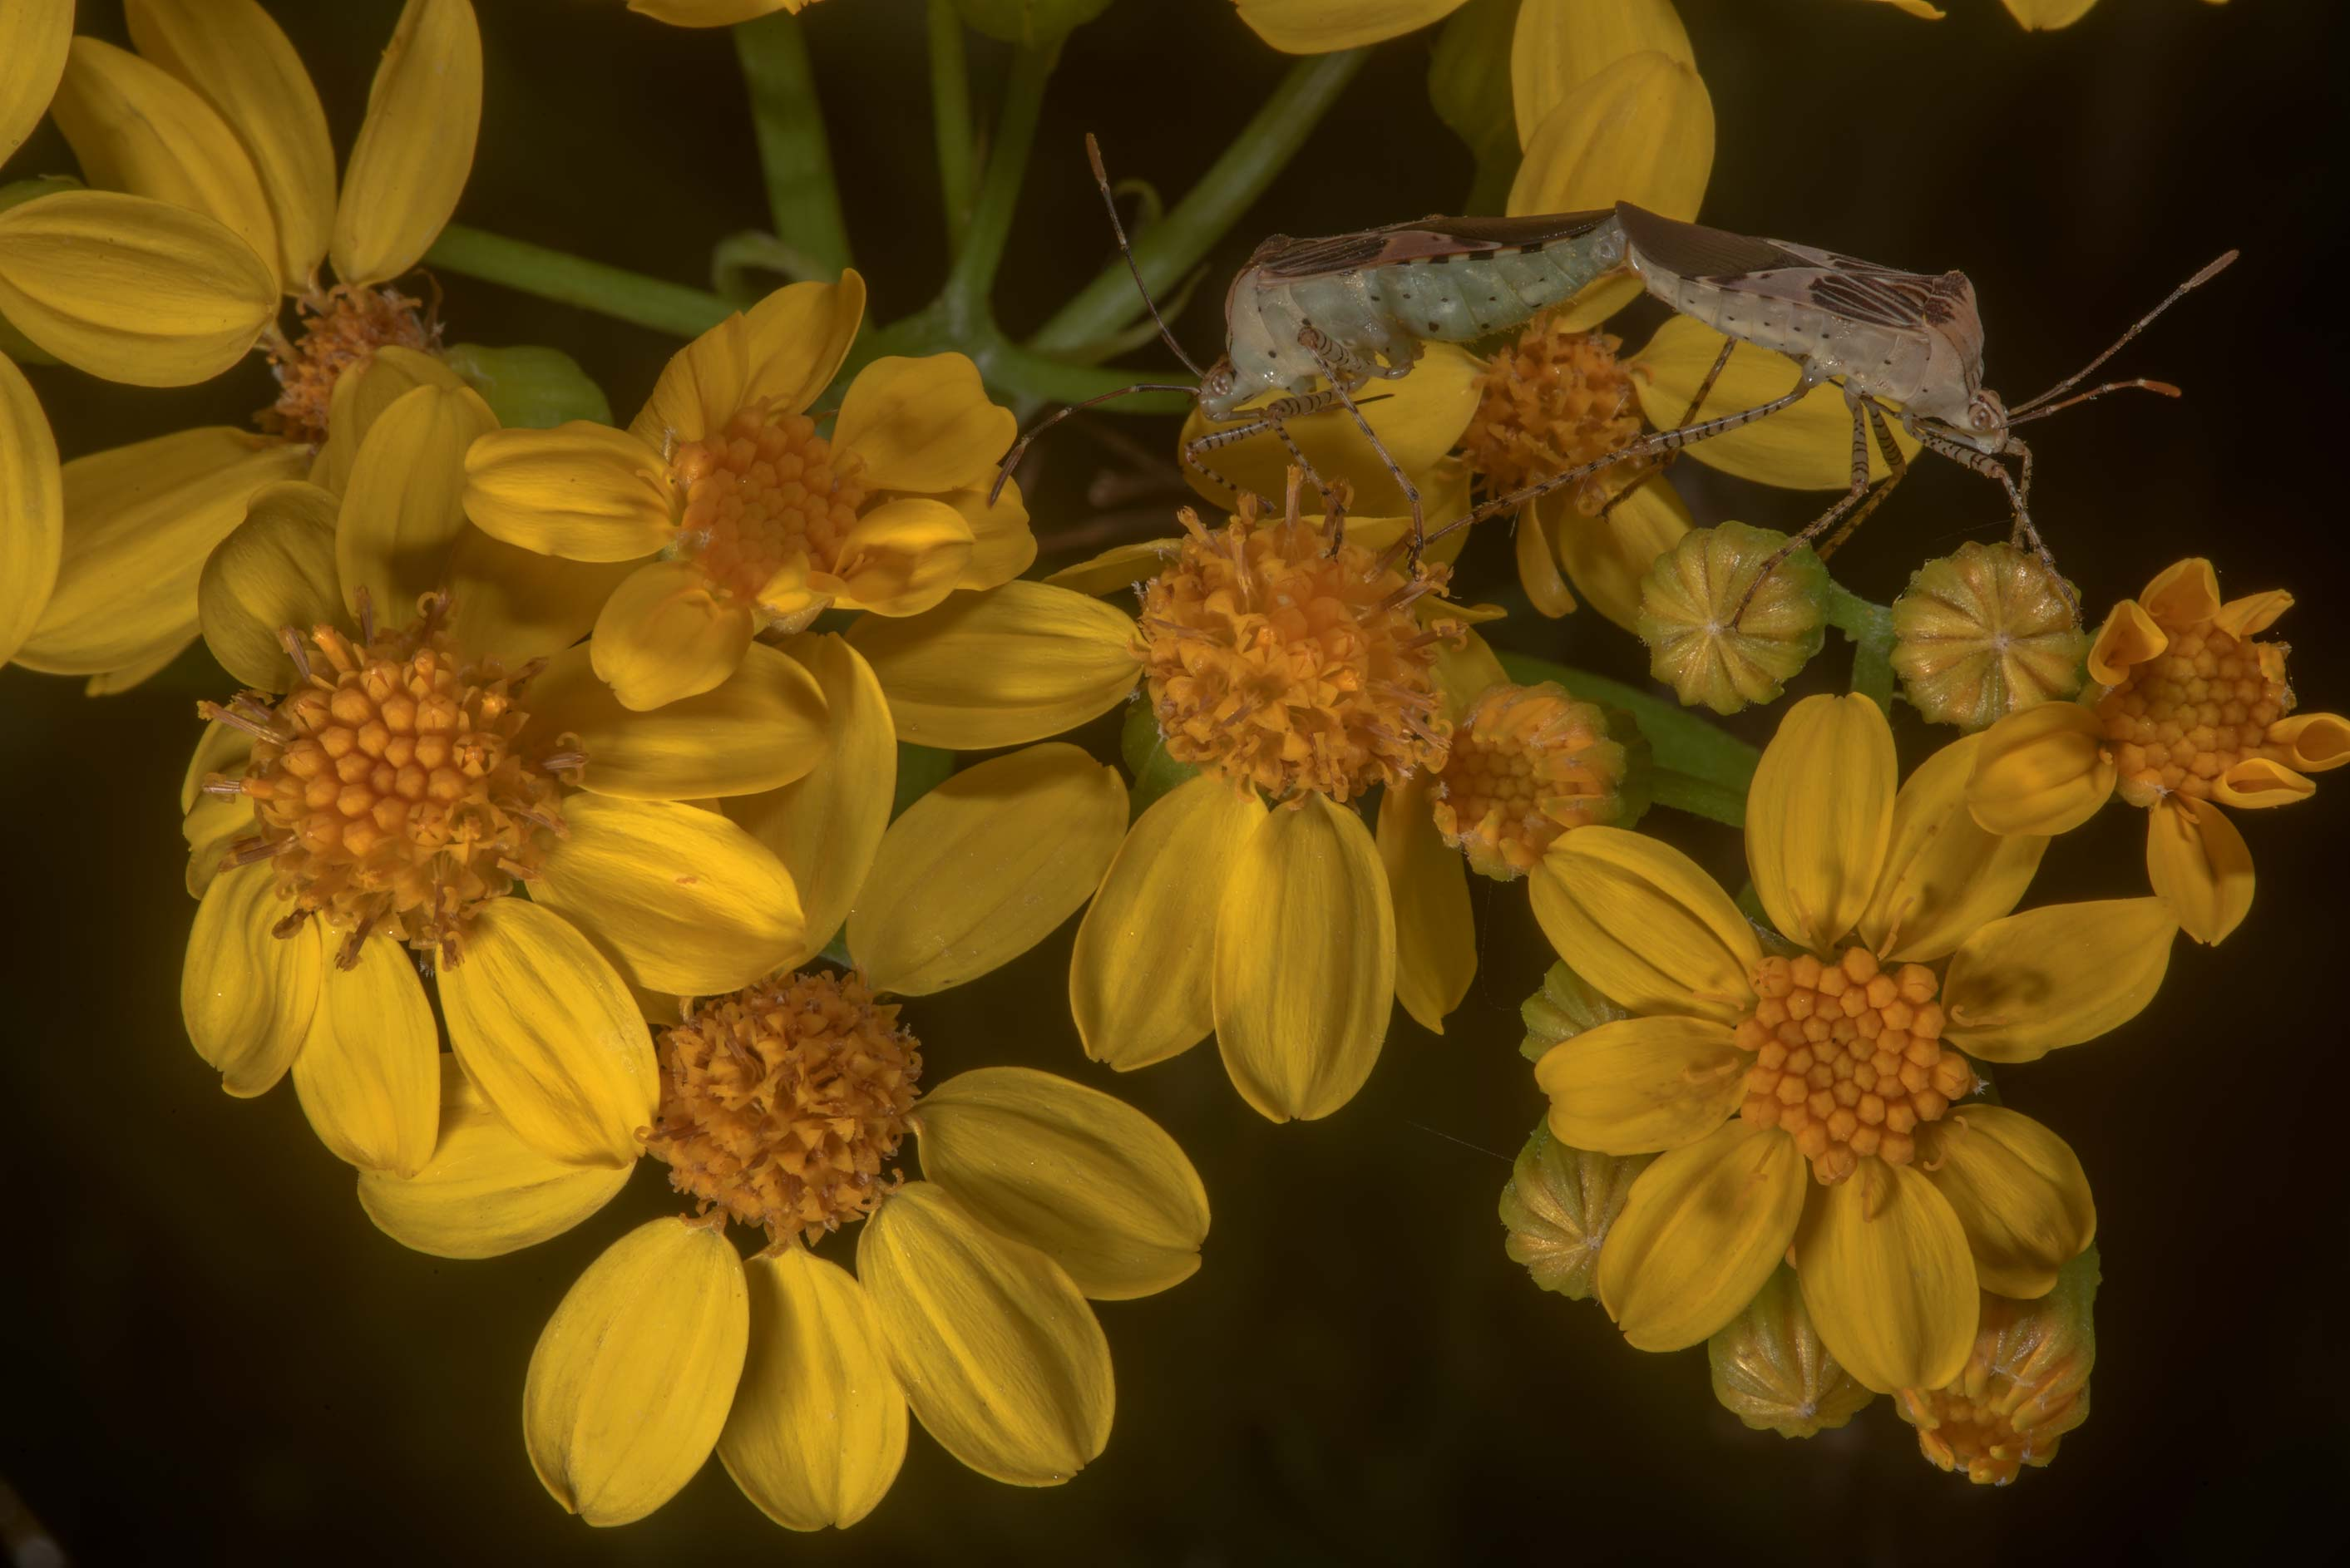 Yellow flowers of aster family with stink bugs...State Historic Site. Washington, Texas